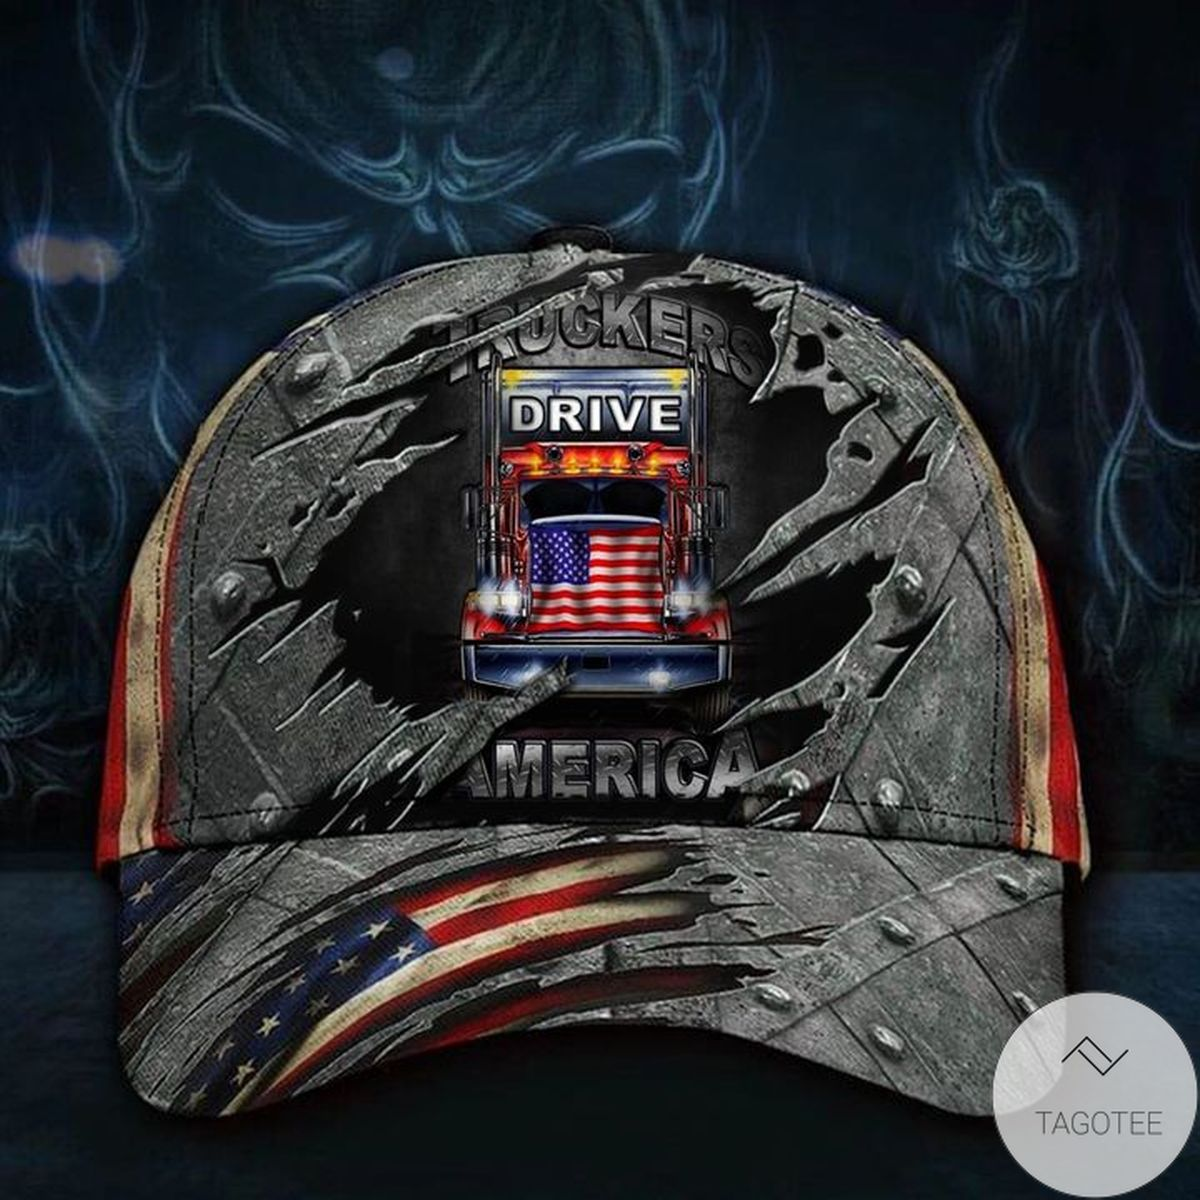 Adorable Truckers Drive America Hat 3D Printed Vintage Men's Cap For Truck Driver Father's Day Gift Idea